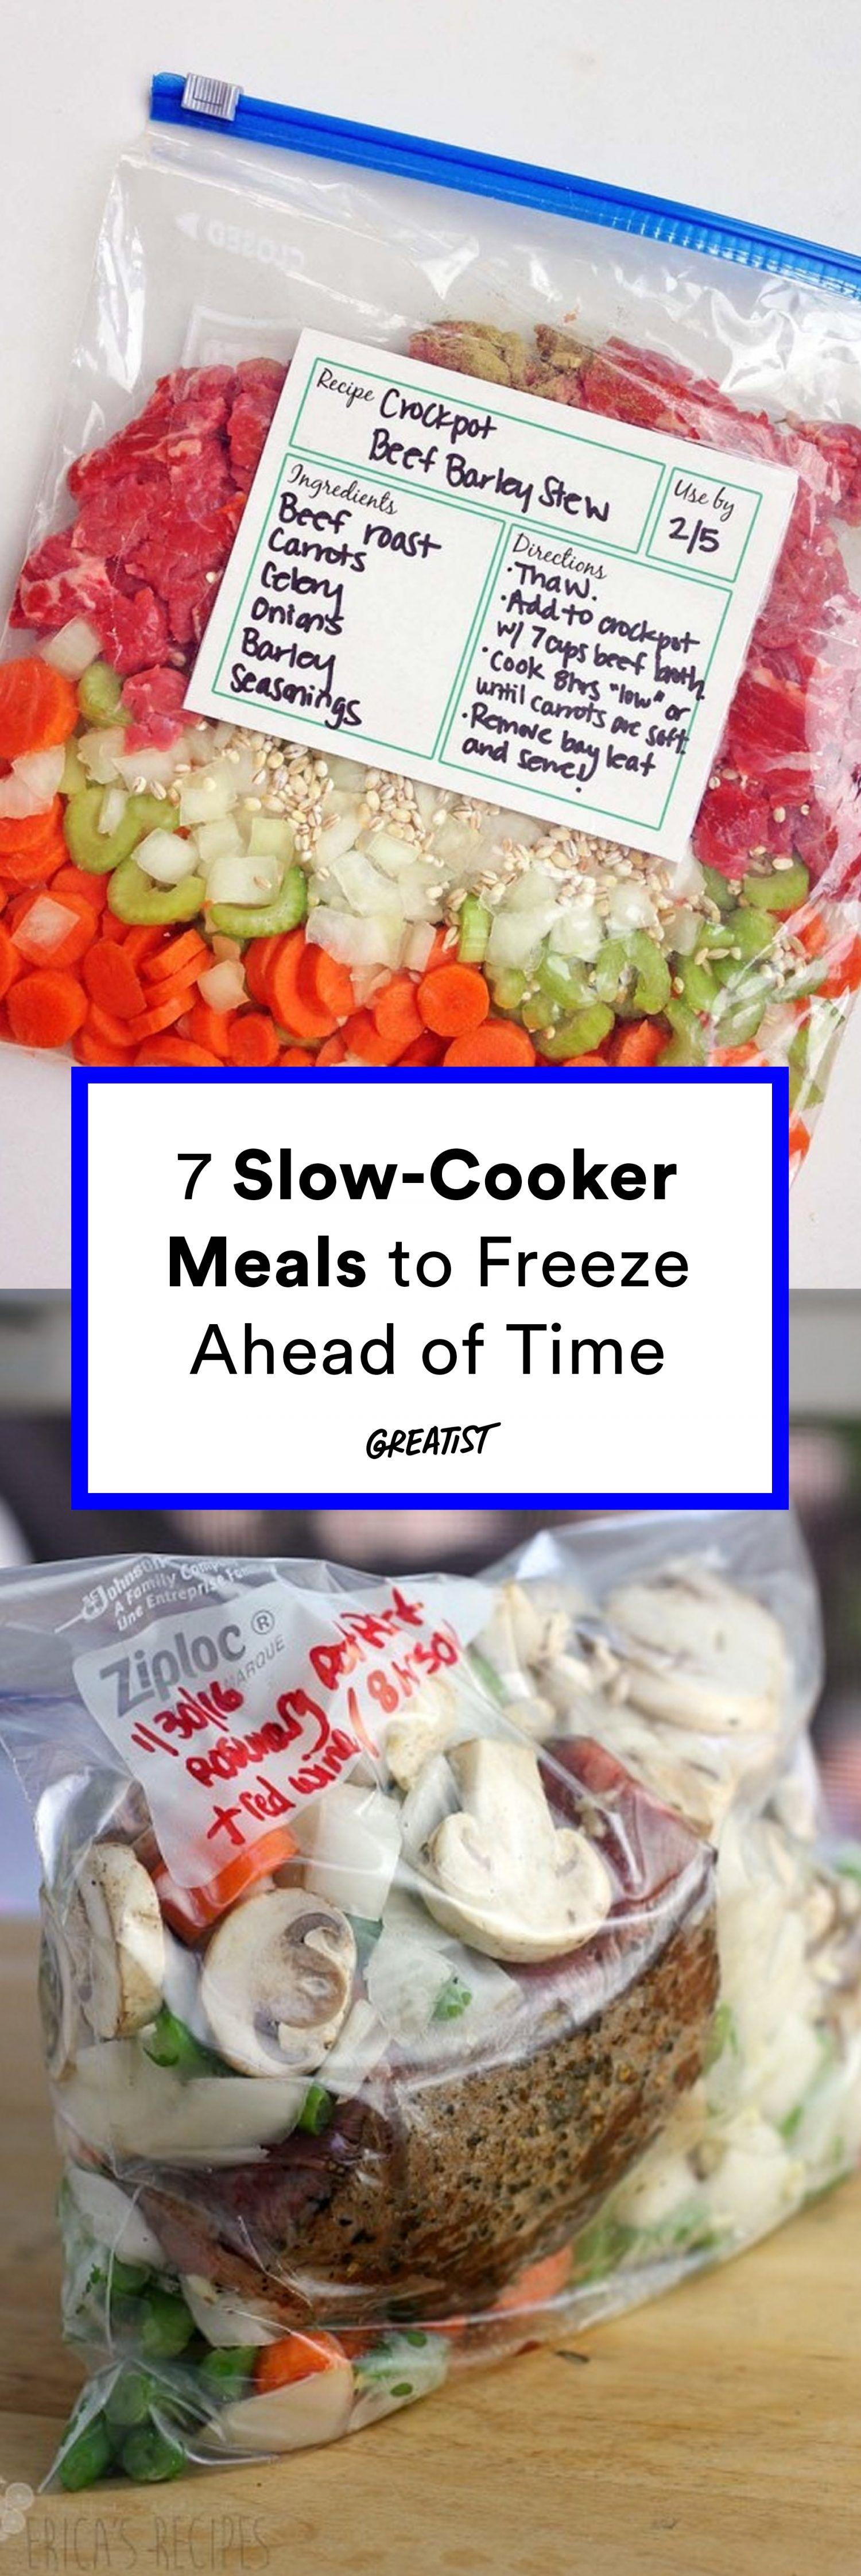 7 Slow-Cooker Dinners You Can Make and Freeze Ahead of Time